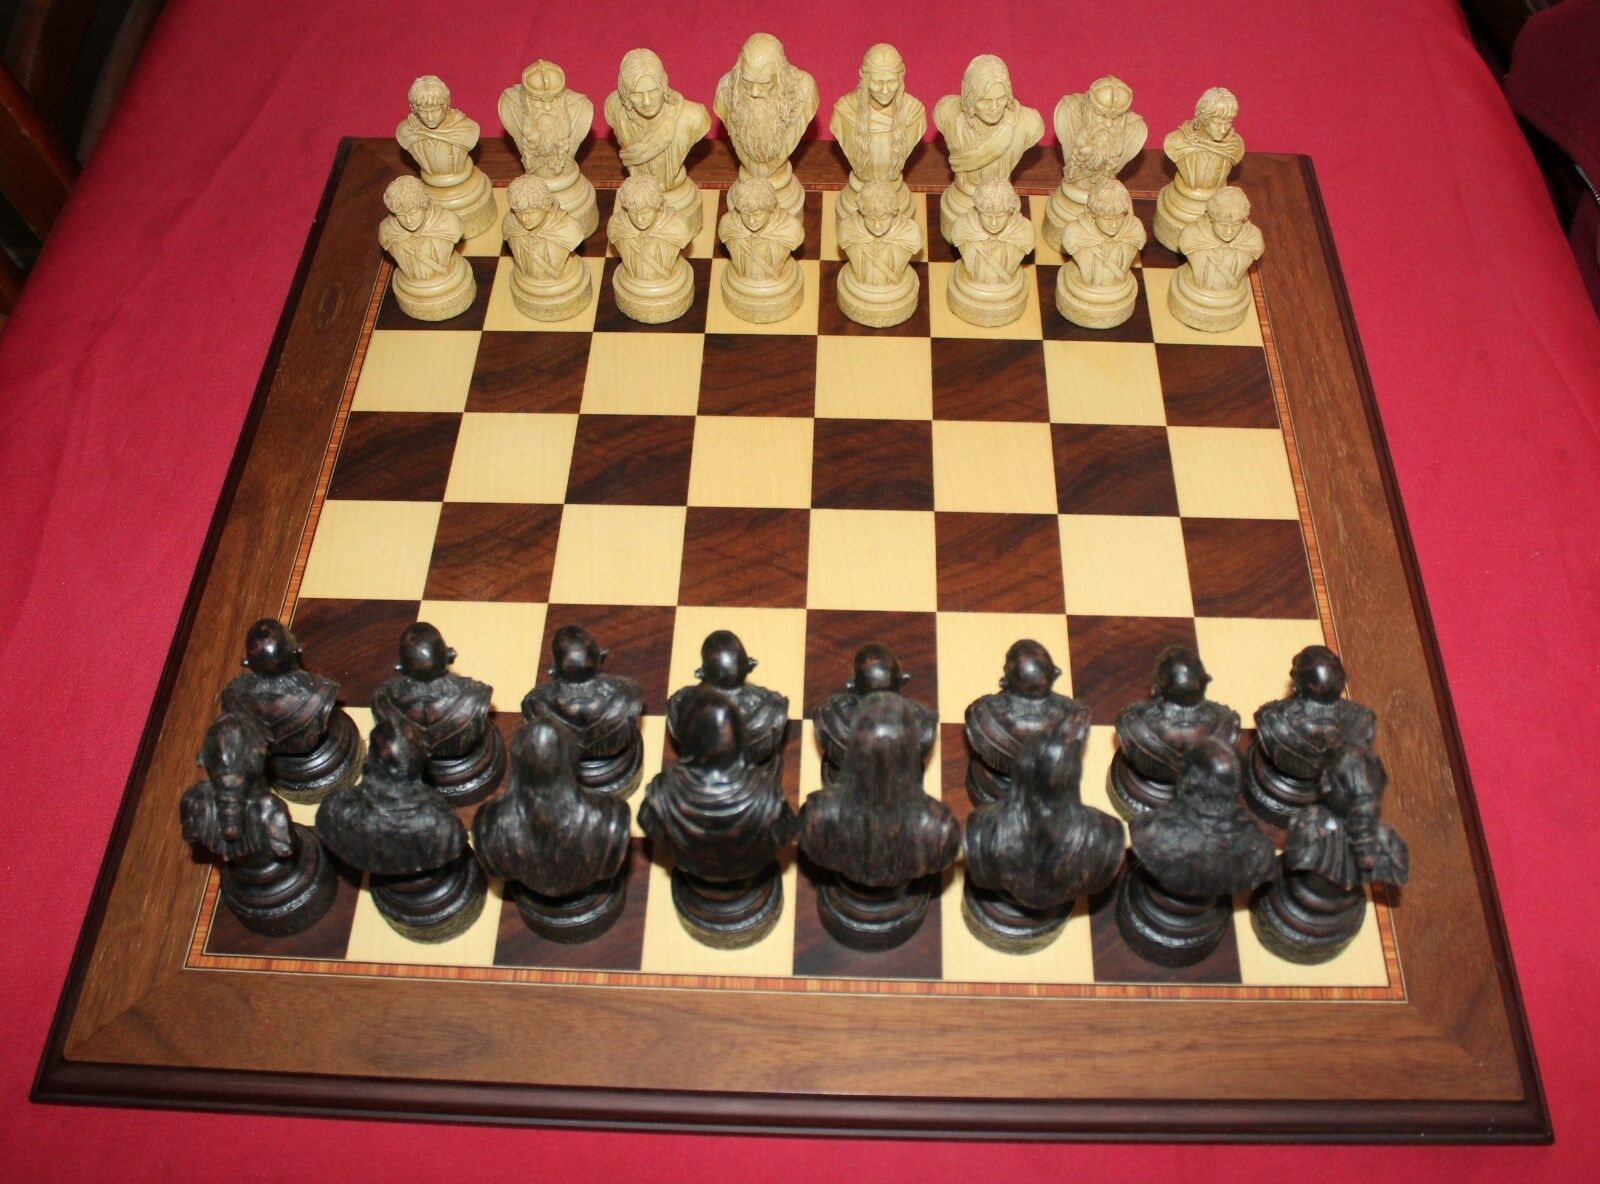 Studio Anne Carlton  Lord of The Rings Chess Set with Inlaid Wooden Board